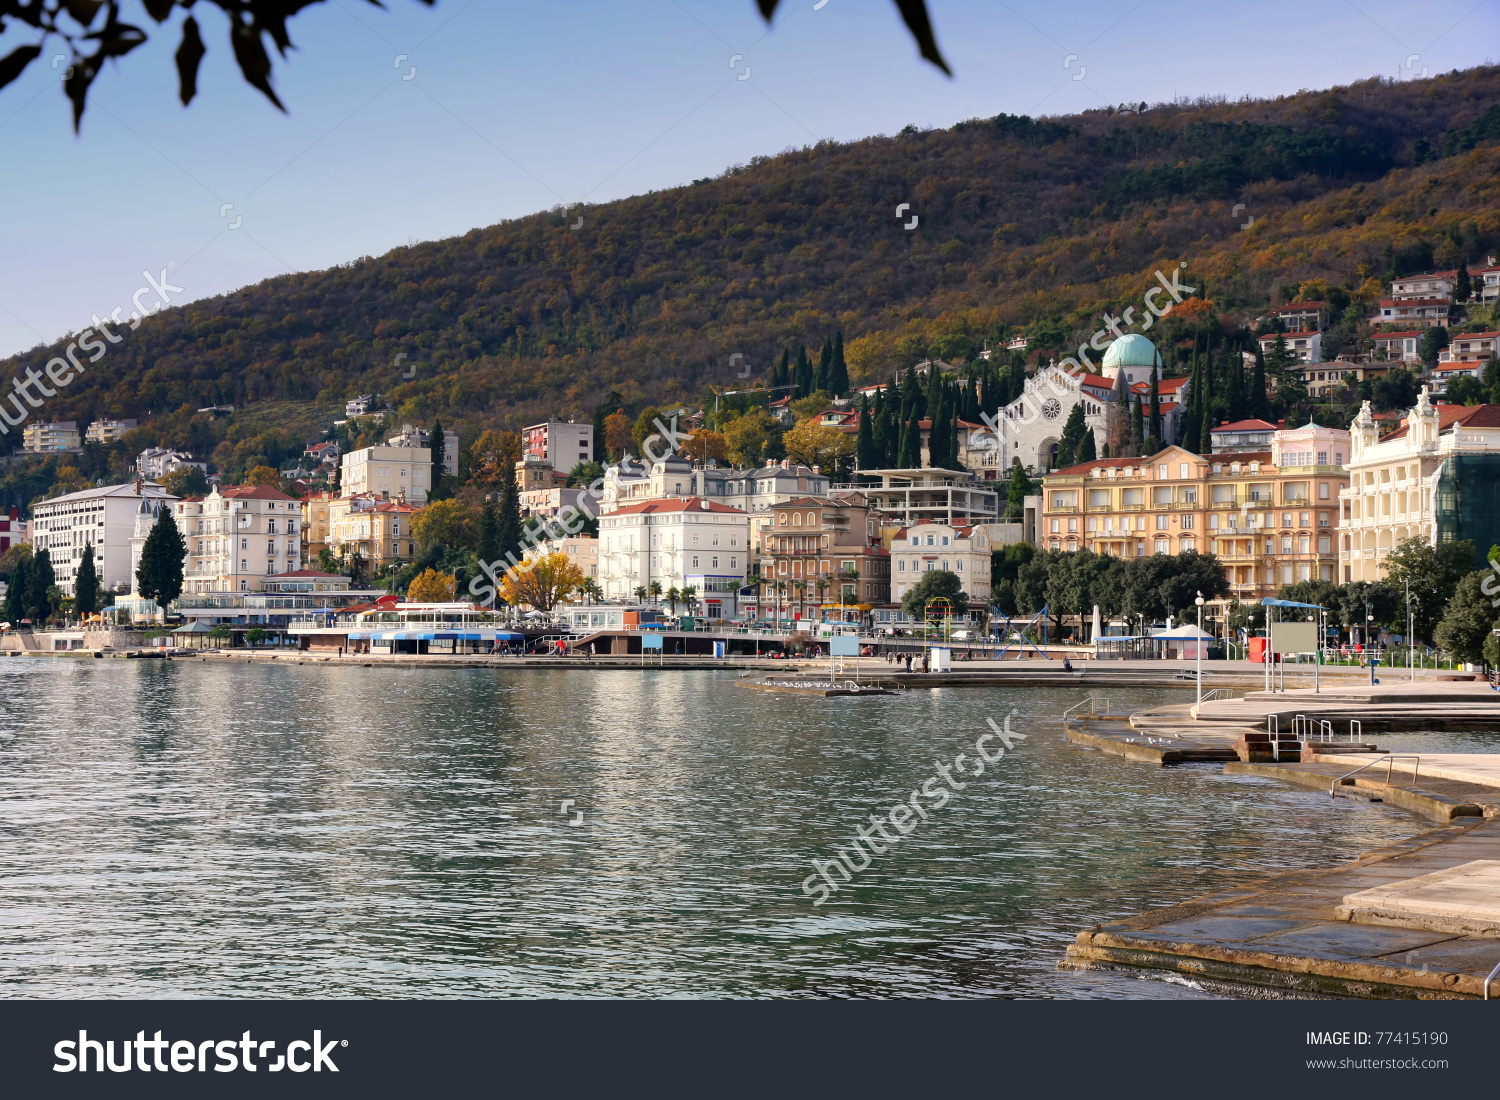 Panoramic View Of Mediterranean Town, Opatija, Croatia Stock Photo.